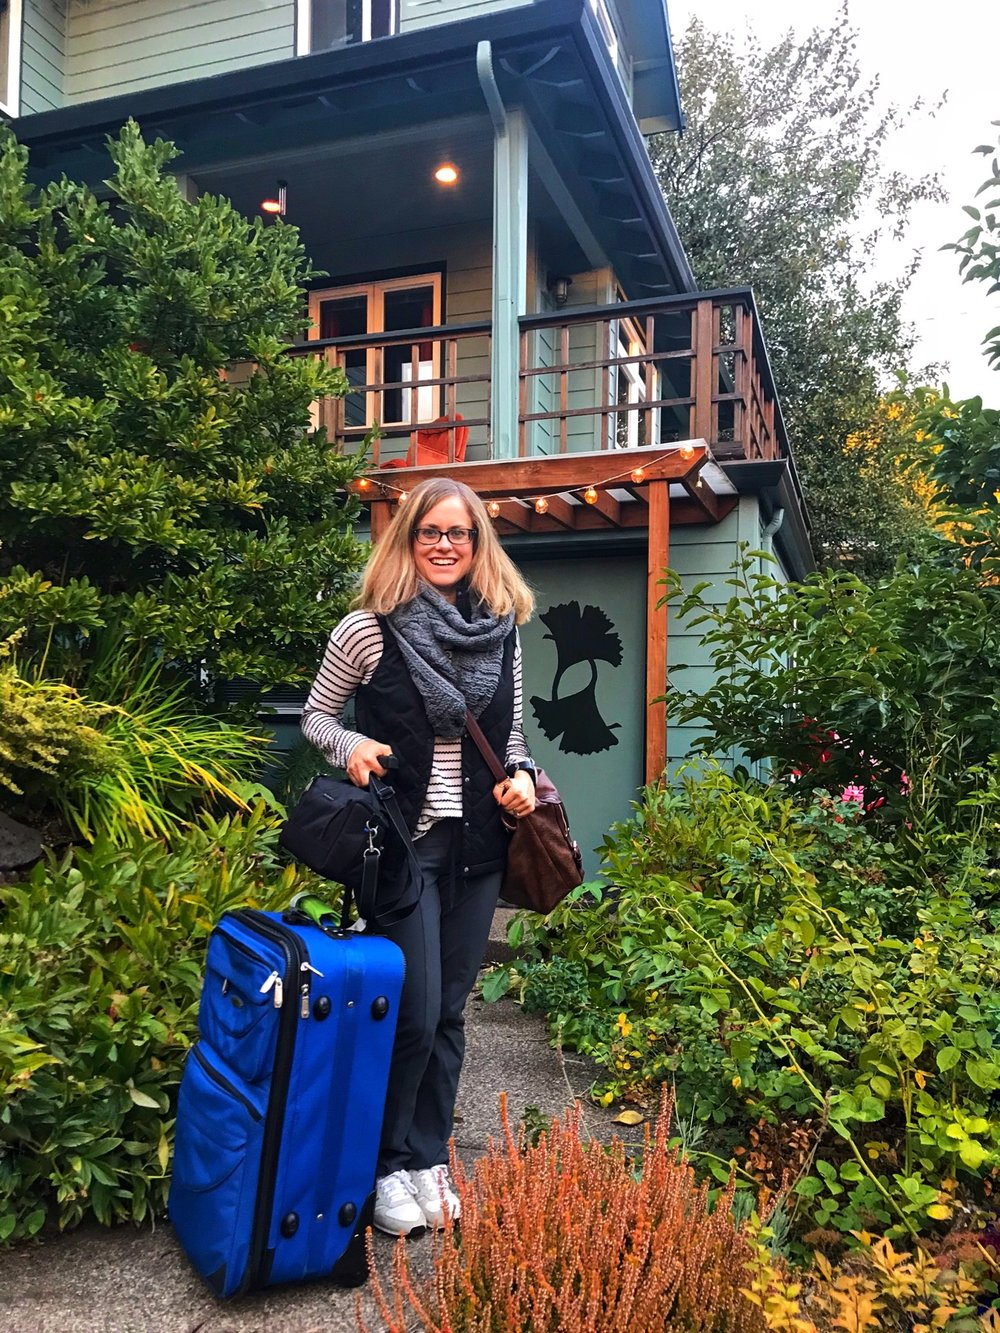 Outside our air bnb in the Mount Tabor neighborhood in Portland. Ready with a half empty suitcase to bring home lots of Oregon goodies.